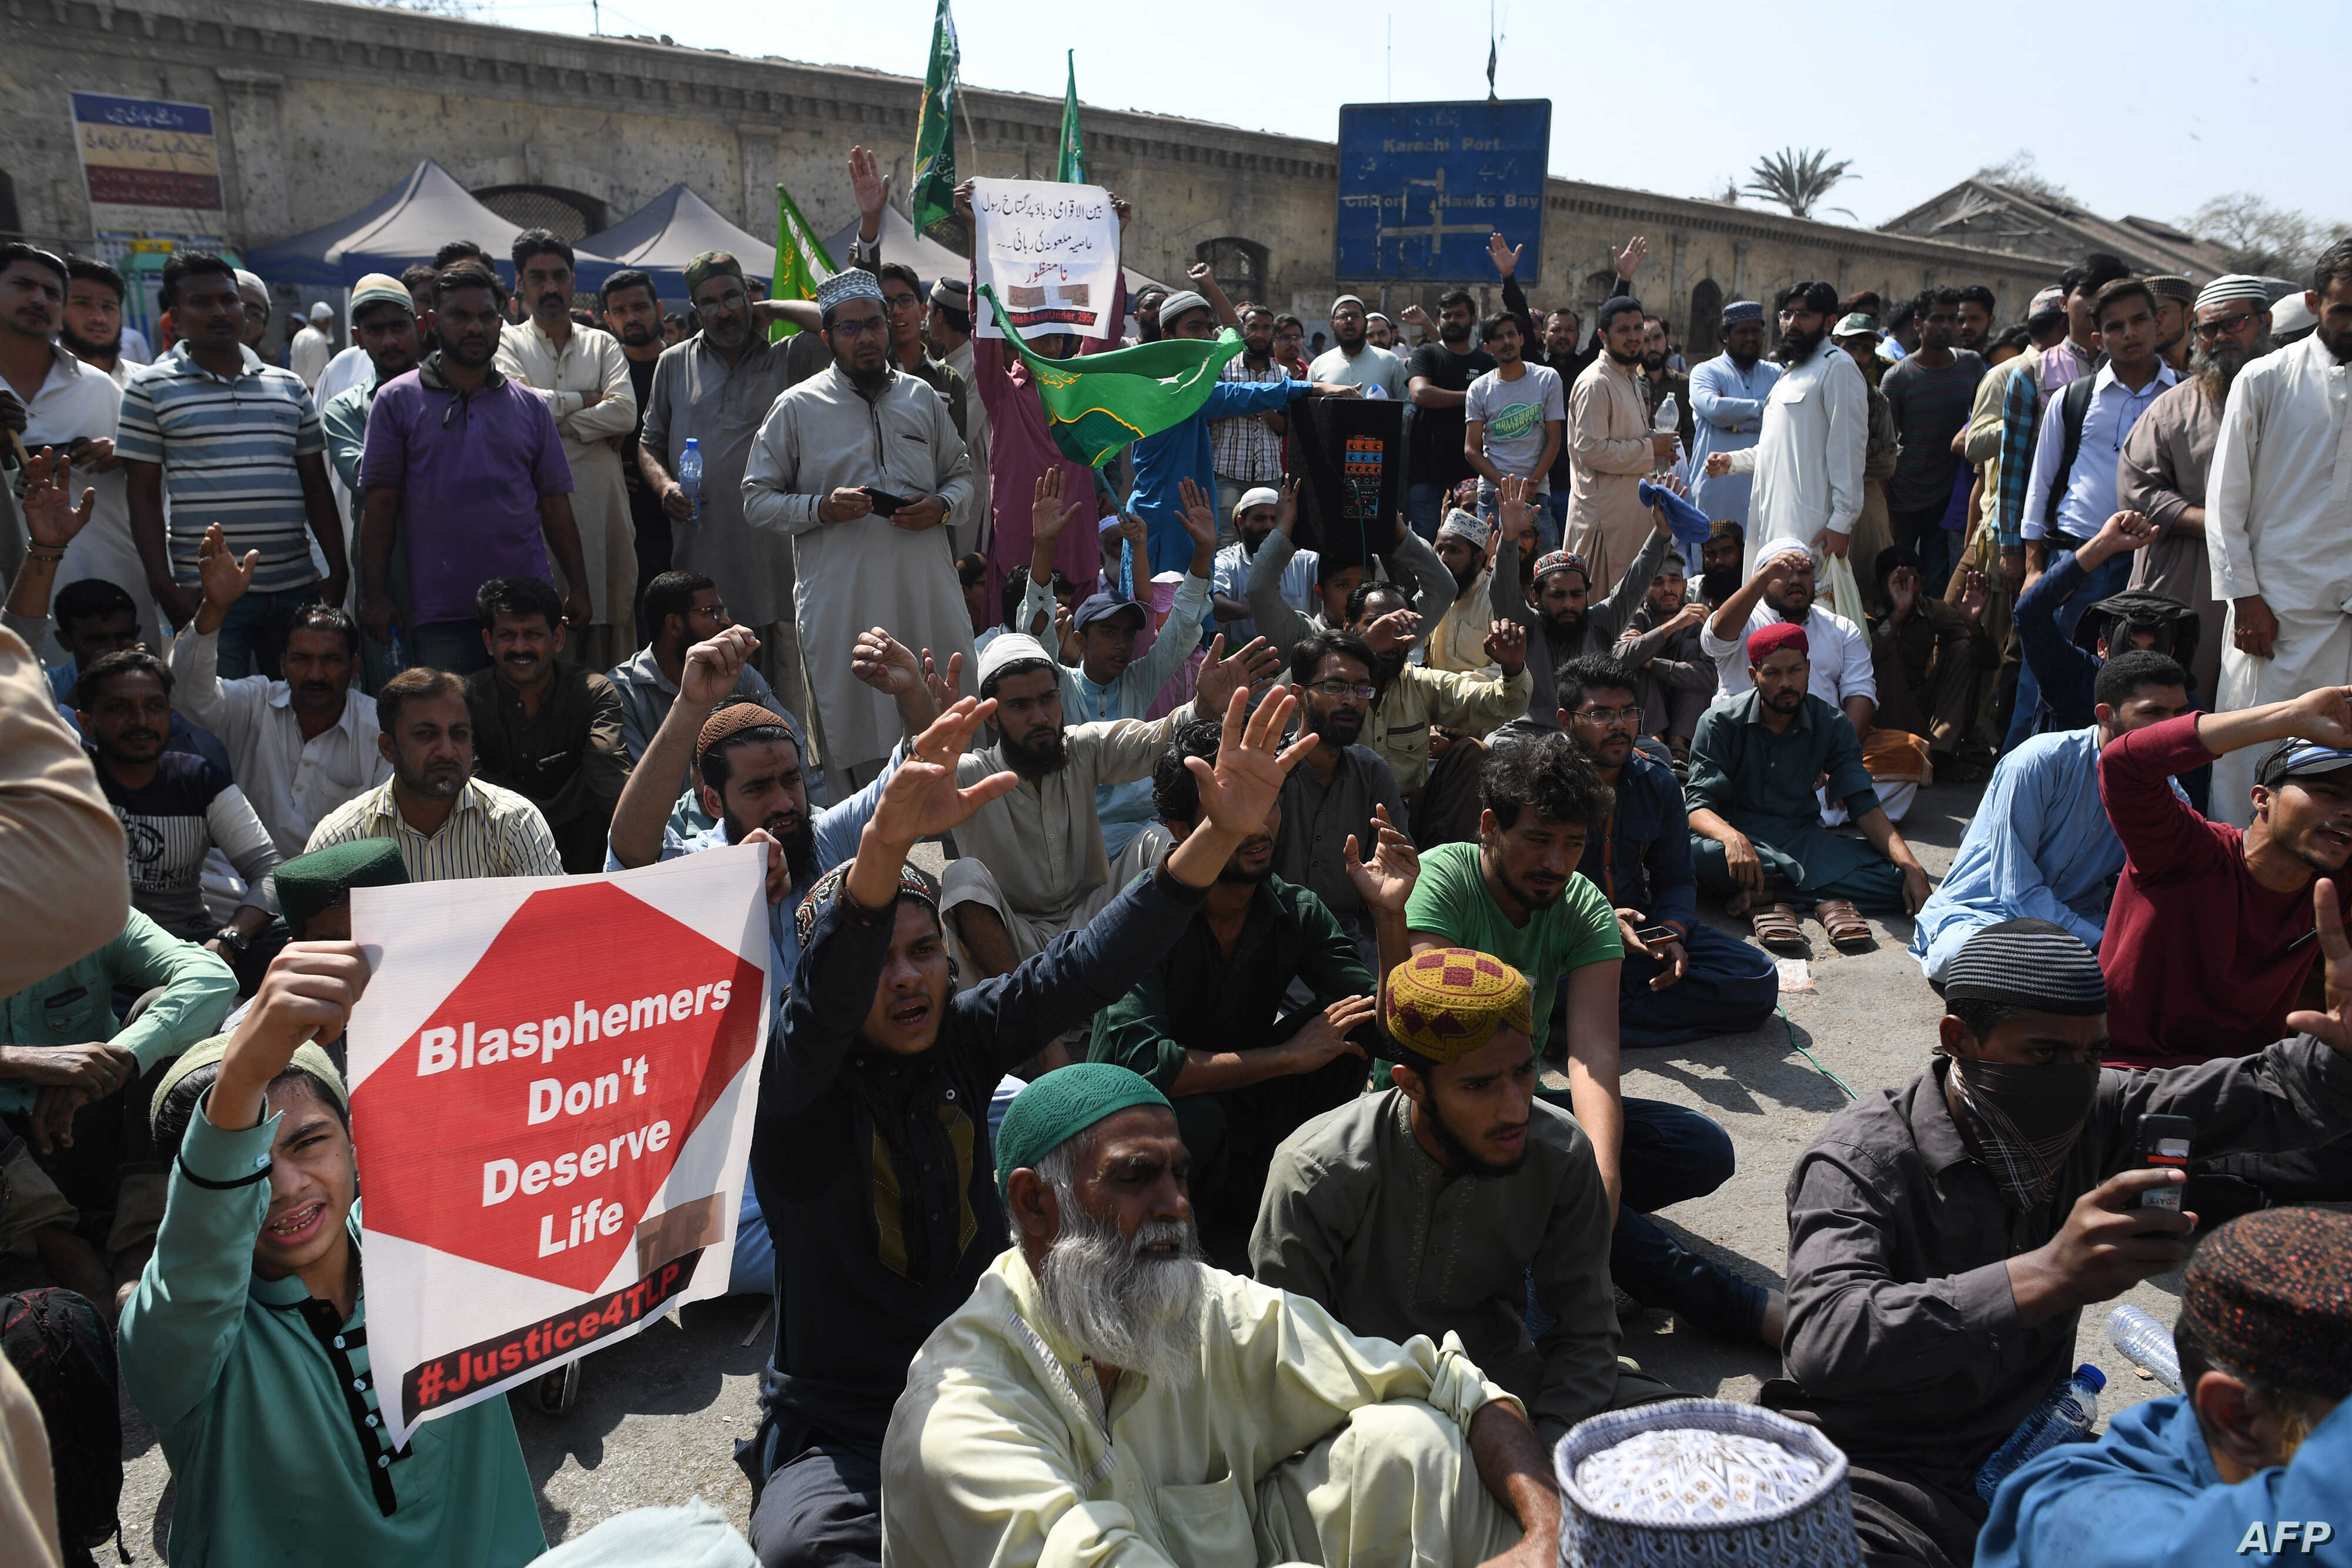 Supporters of the Tehreek-e-Labaik Pakistan (TLP), a hardline religious political party, protest against the court decision to overturn the conviction of Christian woman Asia Bibi in Karachi, Oct. 31, 2018.